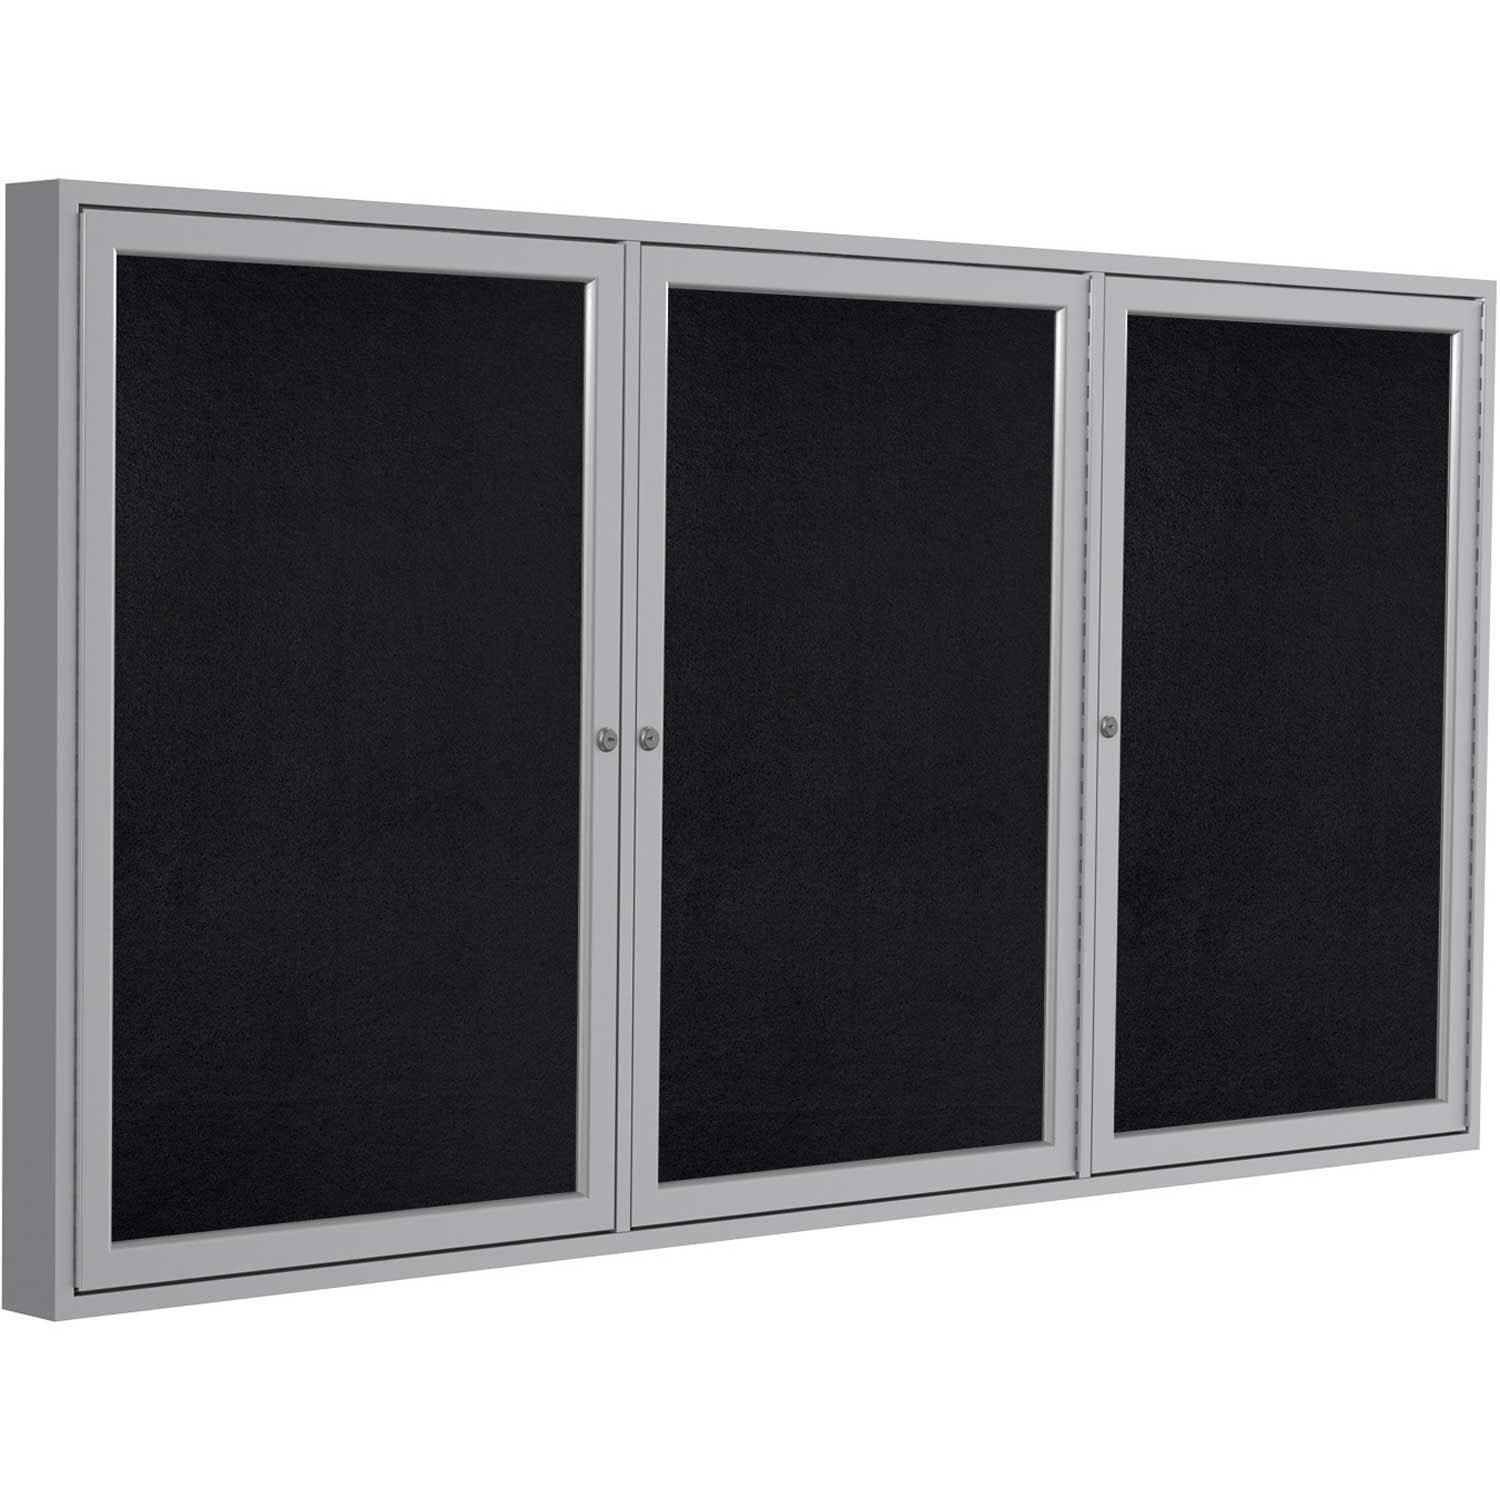 Ghent 36''x72'' 3-Door indoor Enclosed Recycled Rubber Bulletin Board, Shatter Resistant, with Lock, Satin Aluminum Frame,Black (PA33672TR-BK) ,Made in the USA